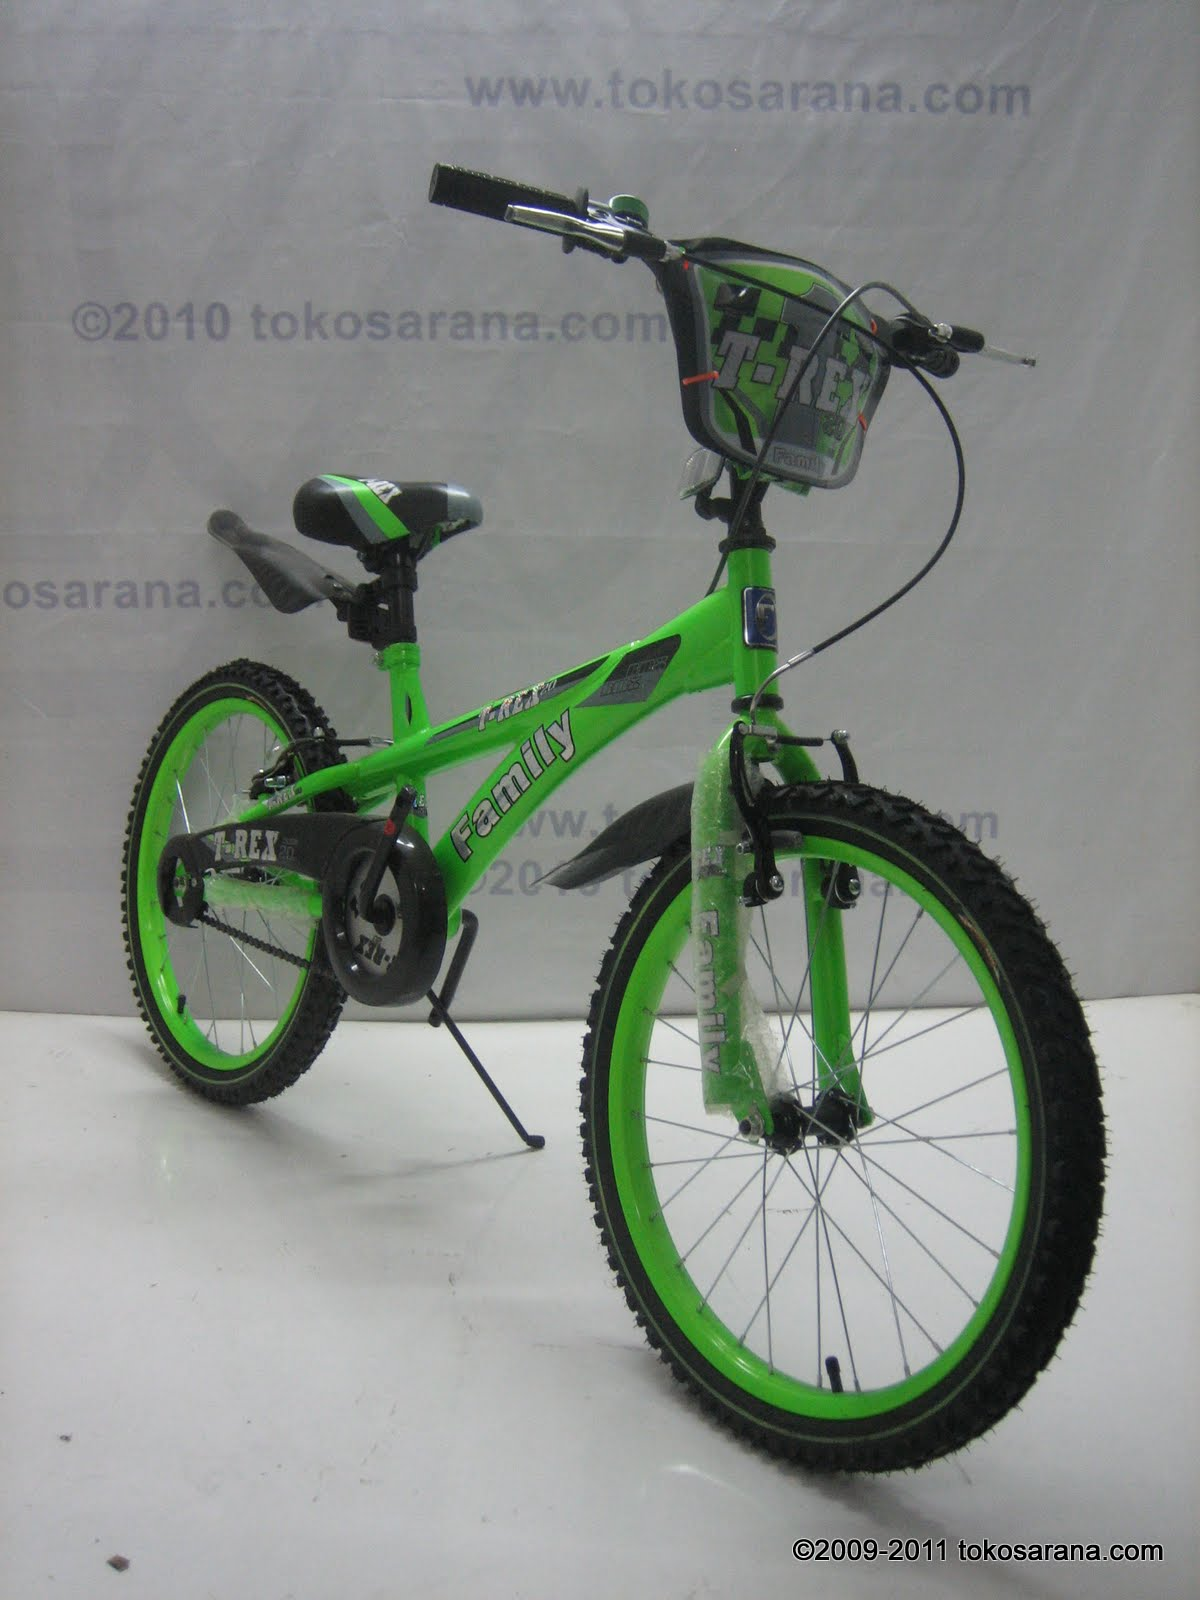 tokomagenta: A Showcase of Products: Sepeda BMX Family T